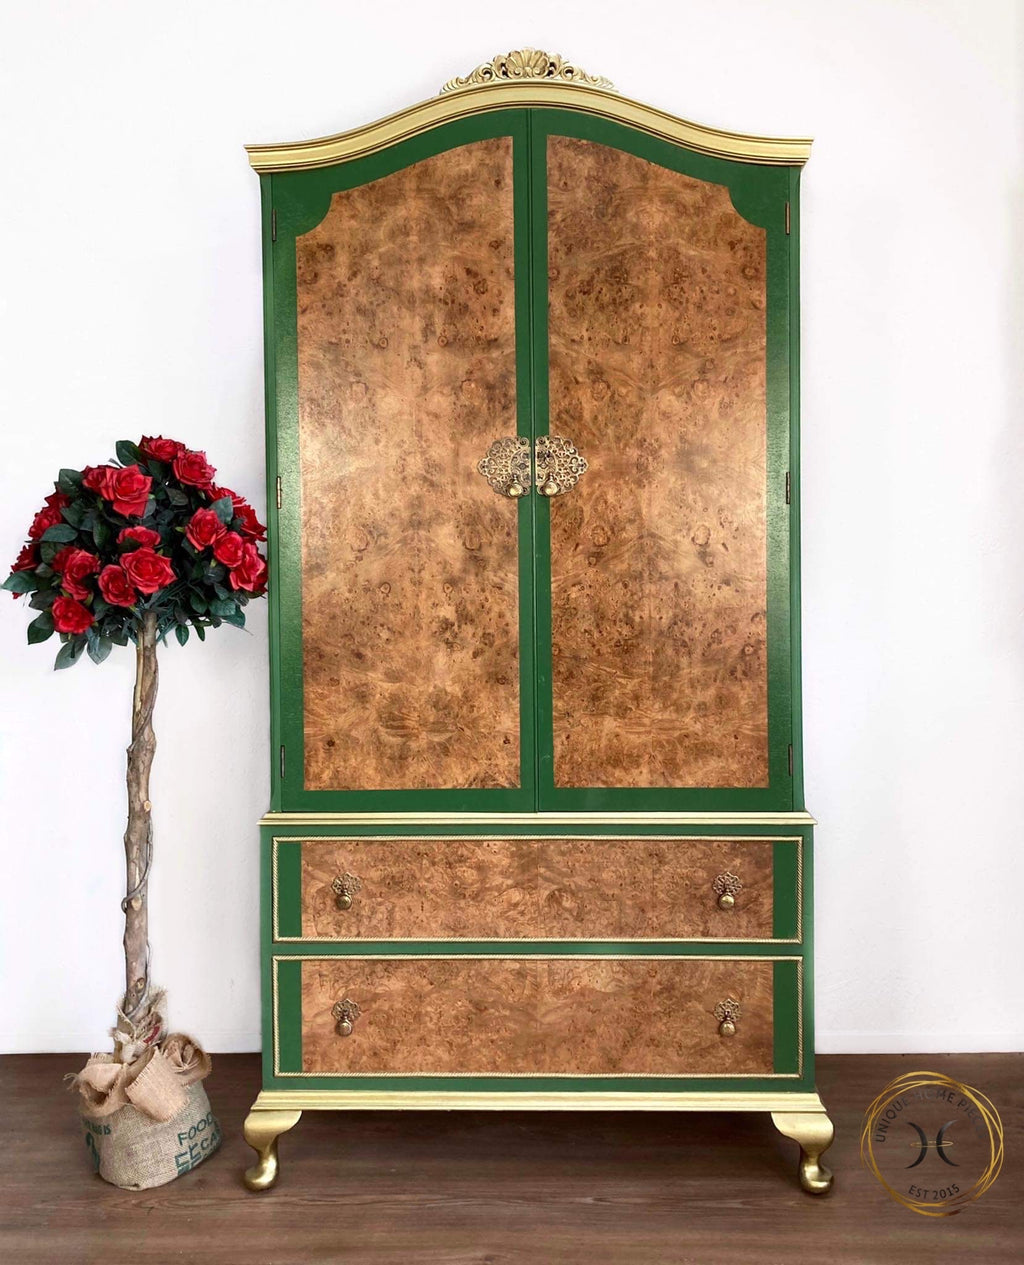 Green Gold Burr Walnut Gentleman wardrobe - Unique Home Pieces